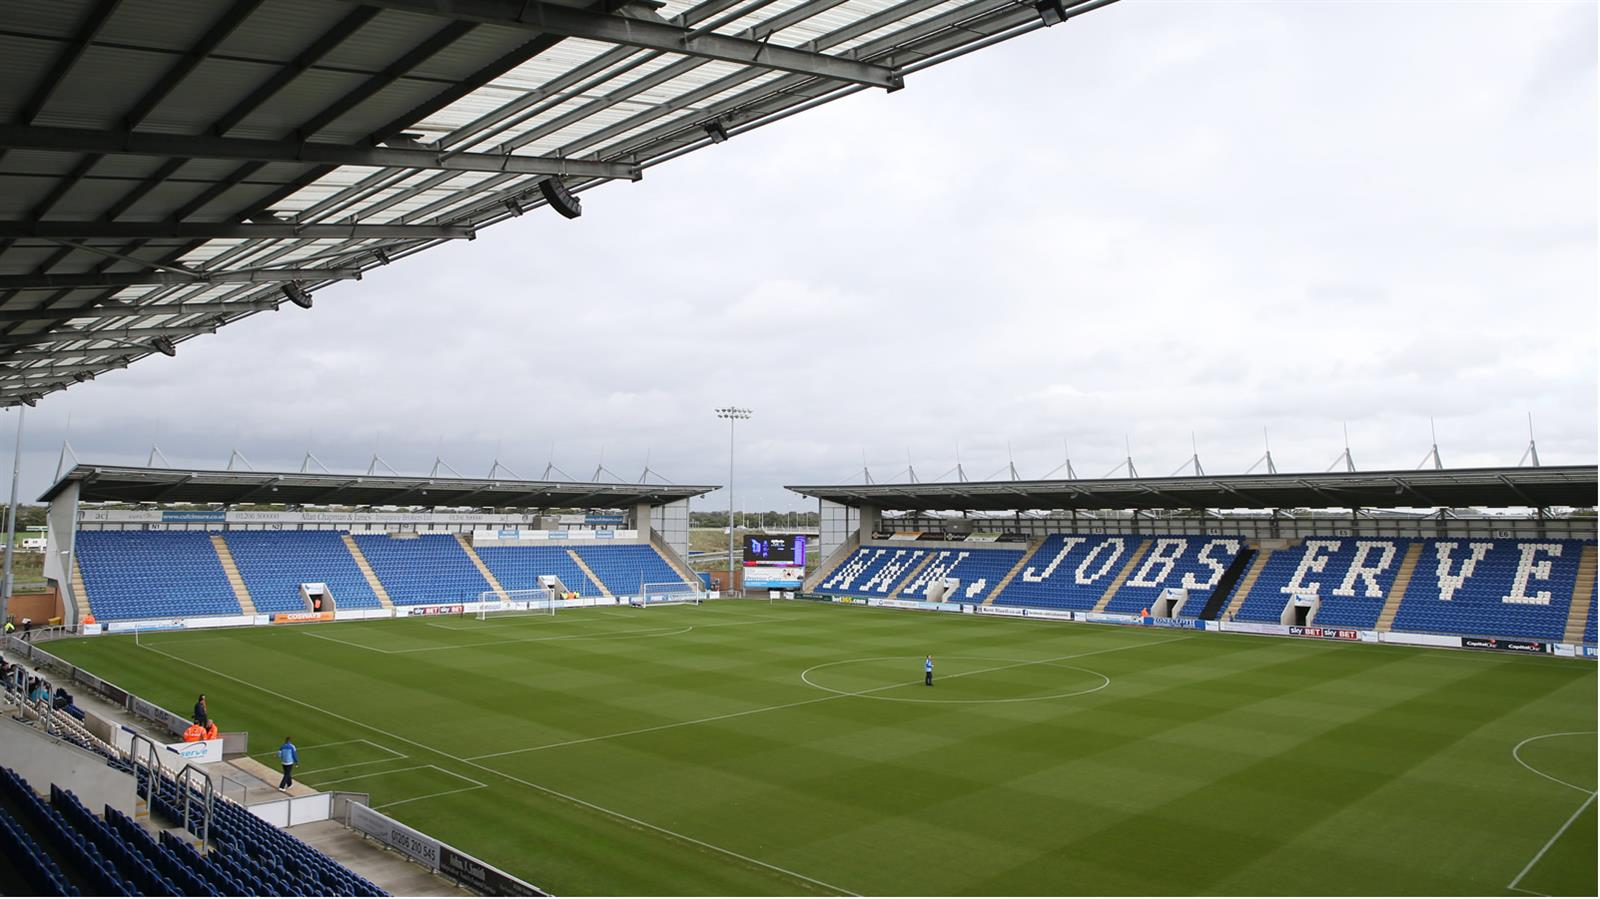 Co Op Advertising >> COLCHESTER FRIENDLY CONFIRMED - News - Ipswich Town